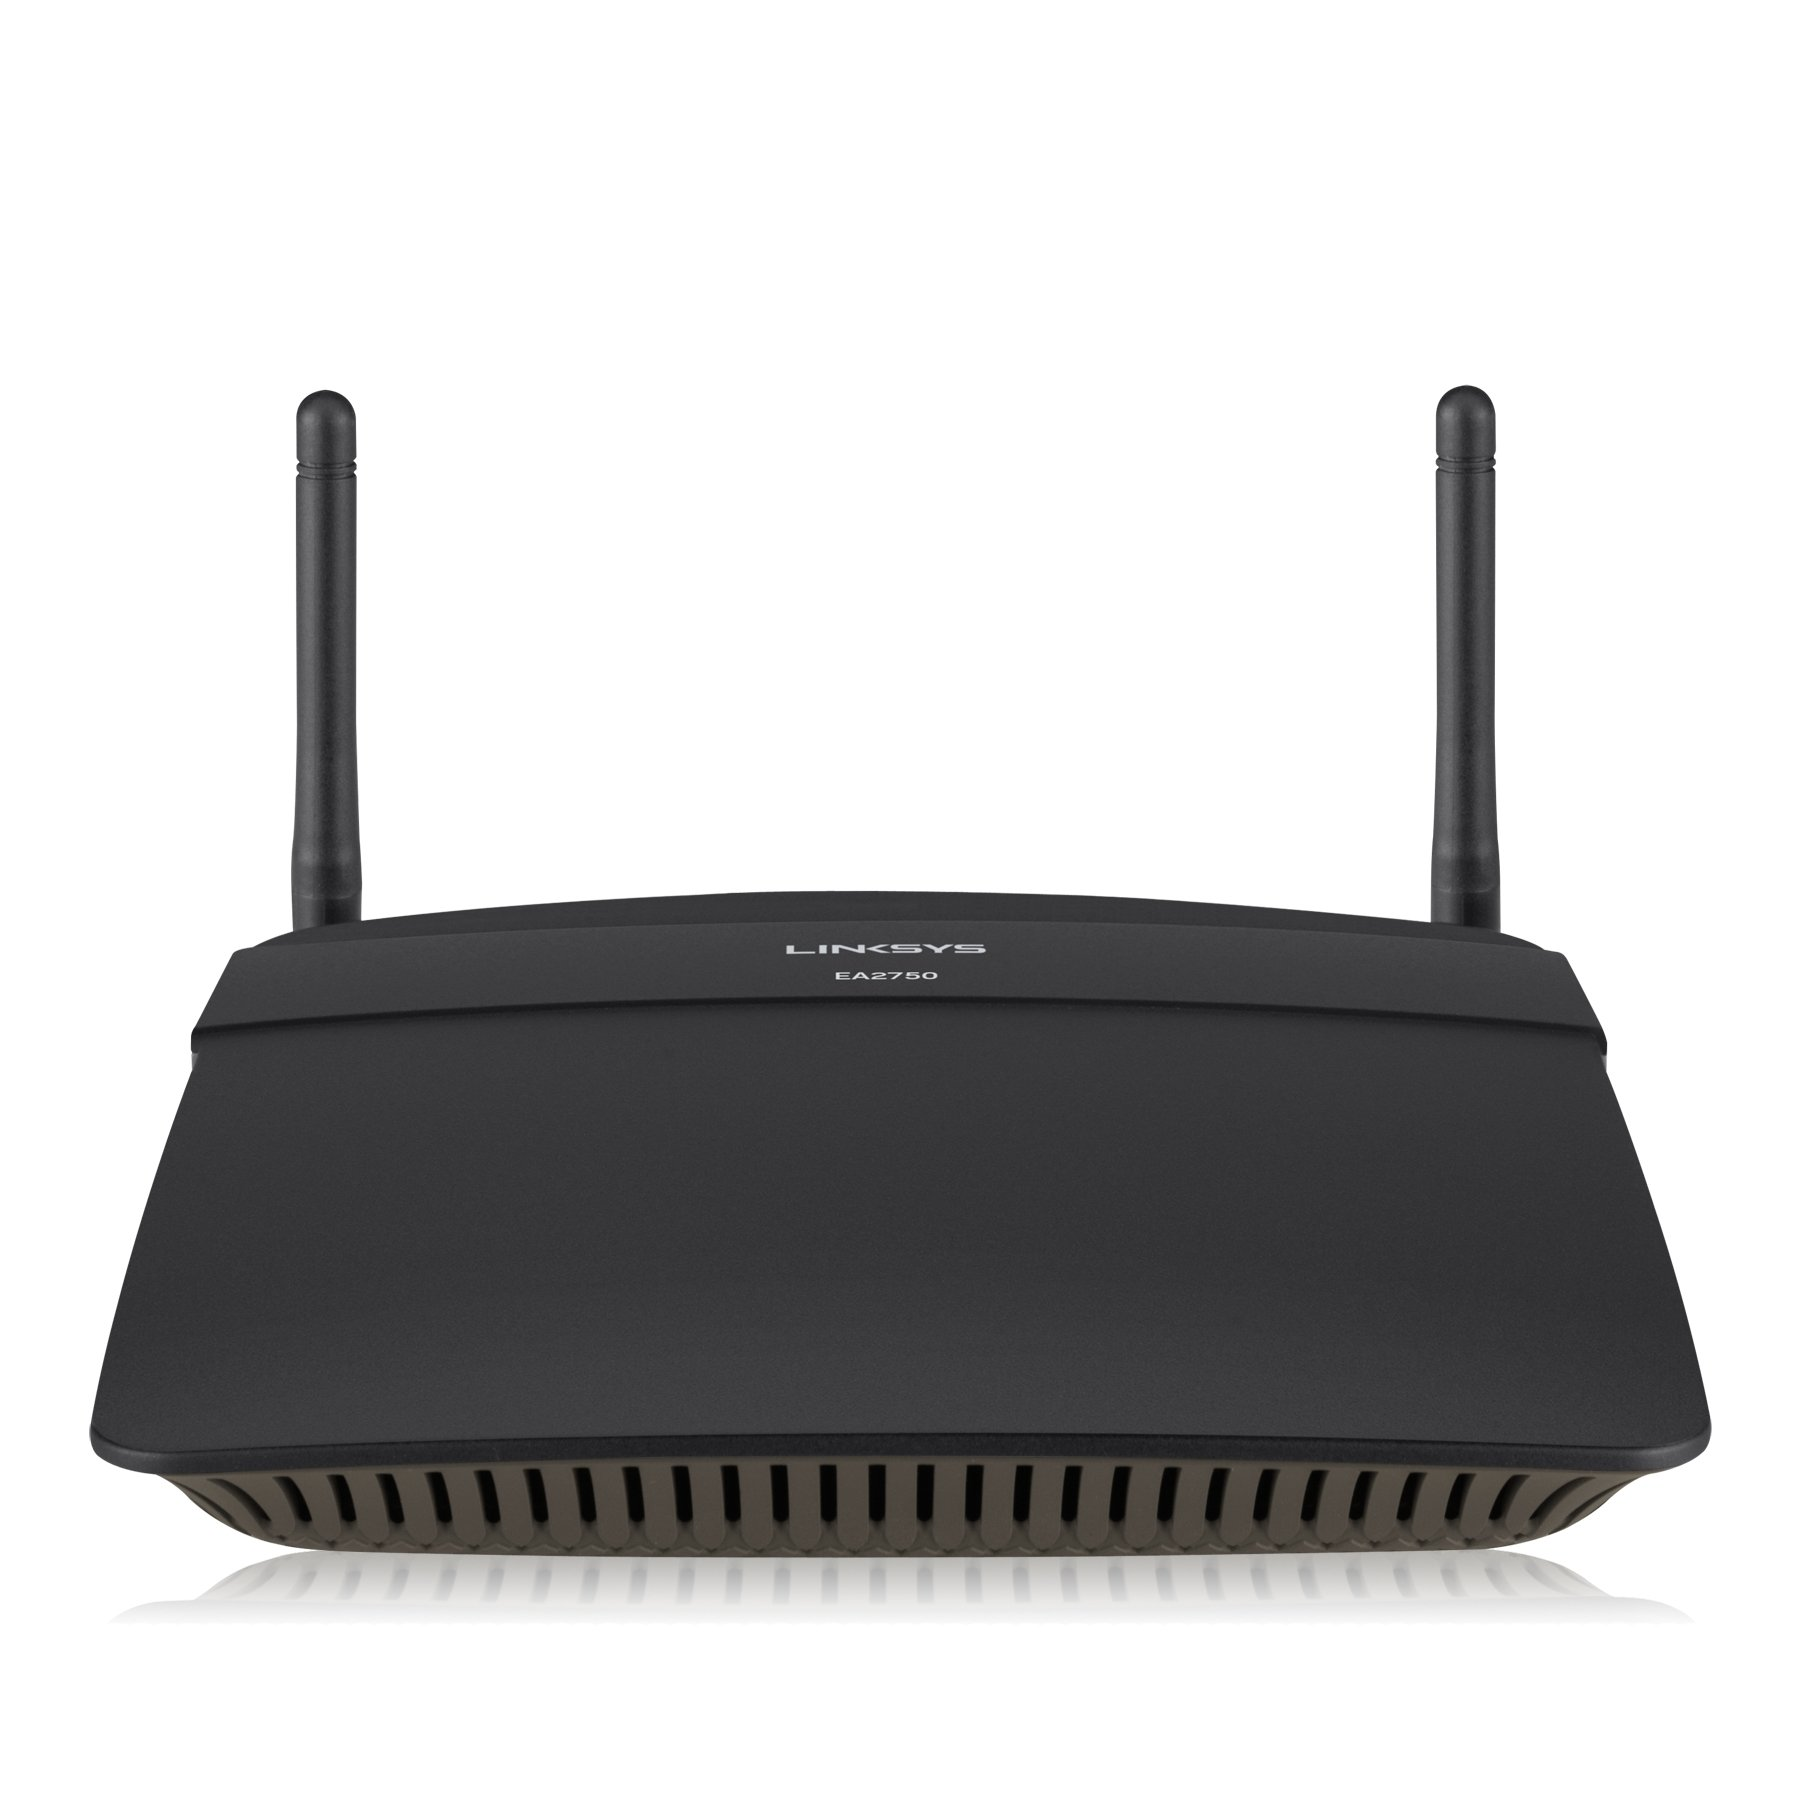 Linksys N600+ Wi-Fi Wireless Dual-Band+ Router with Gigabit Ports (EA2750) by Linksys